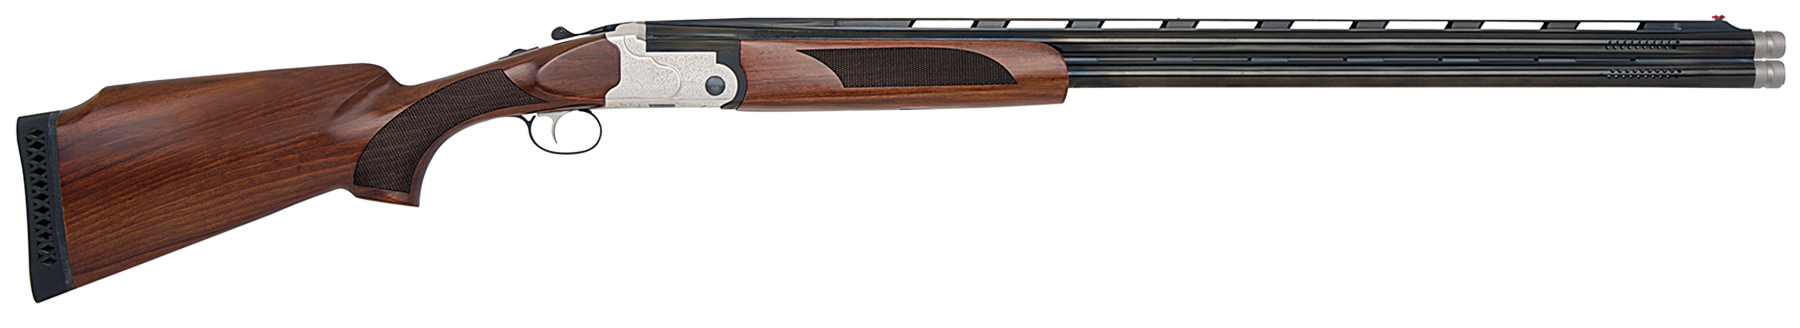 Mossberg Silver Reserve II Field Super Sport Over/Under Shotgun 3'' 12 Gauge 32'' Silver Engraved - Black Walnut